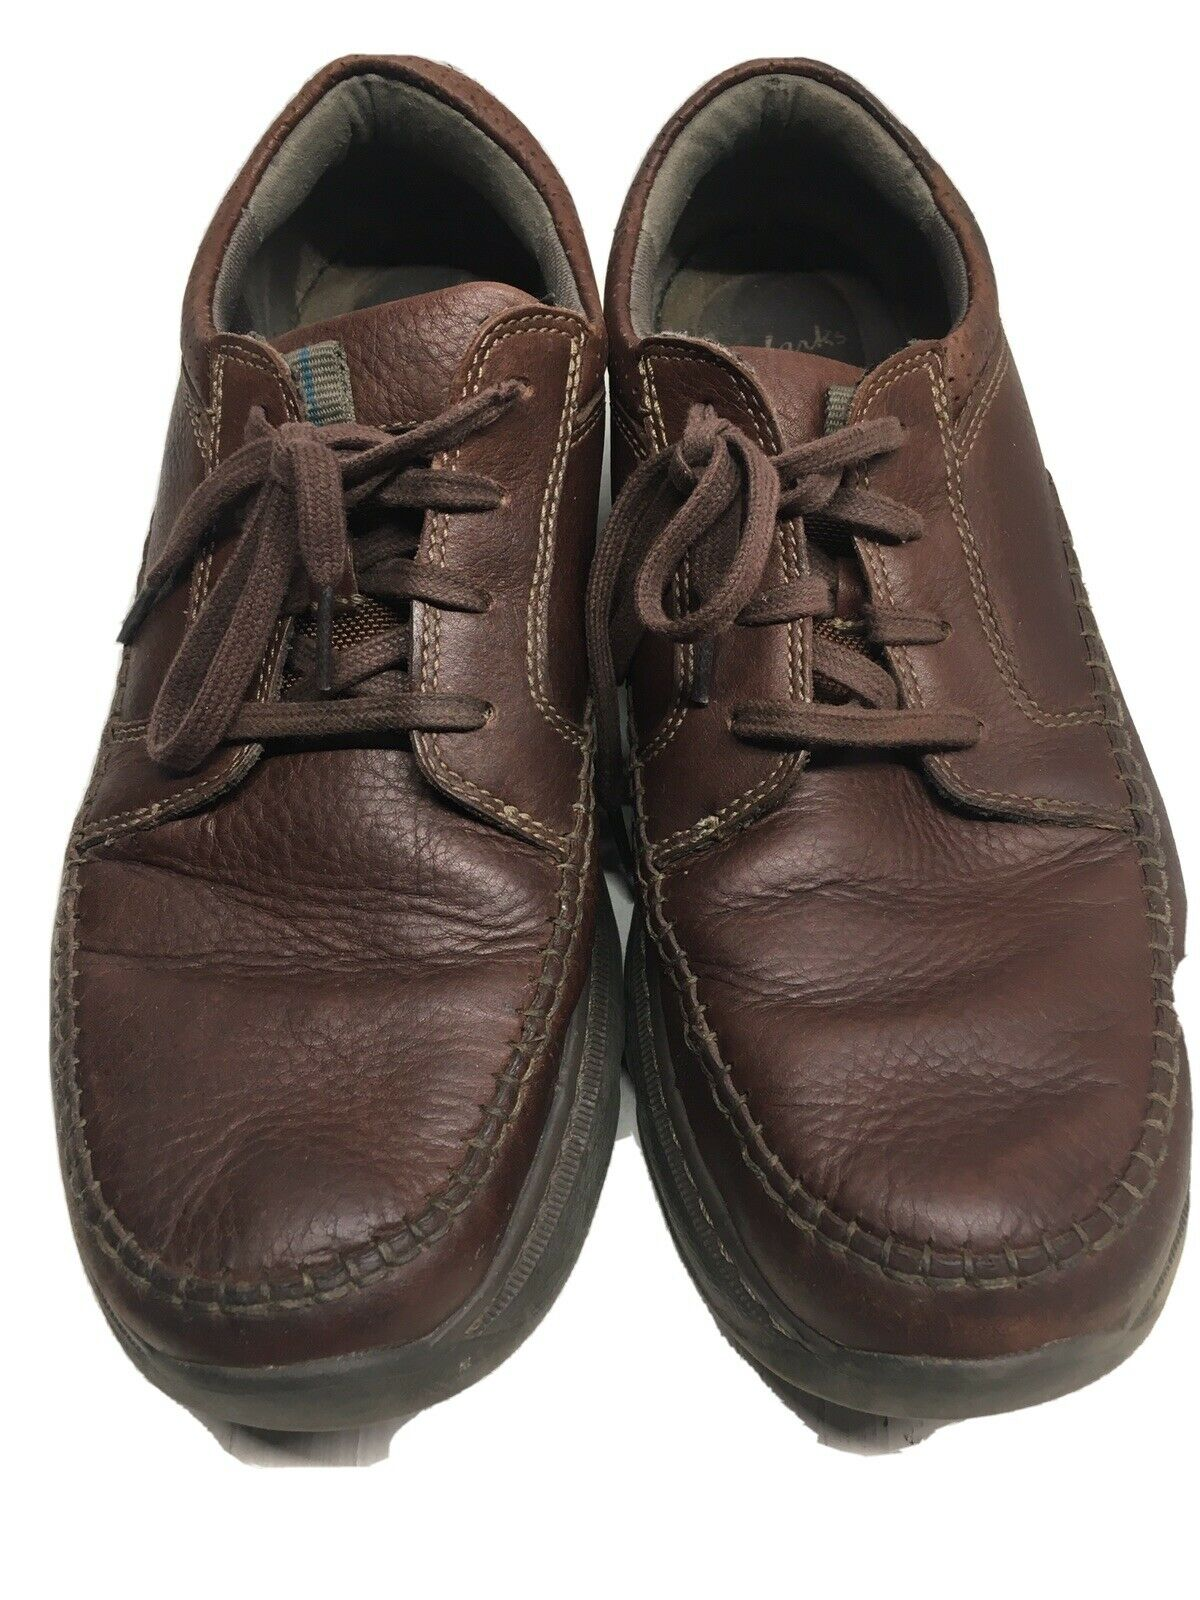 Clarks1825 Leather Casual Comfort Shoes Men's Size11M Brown Lace-Up Max Cushion